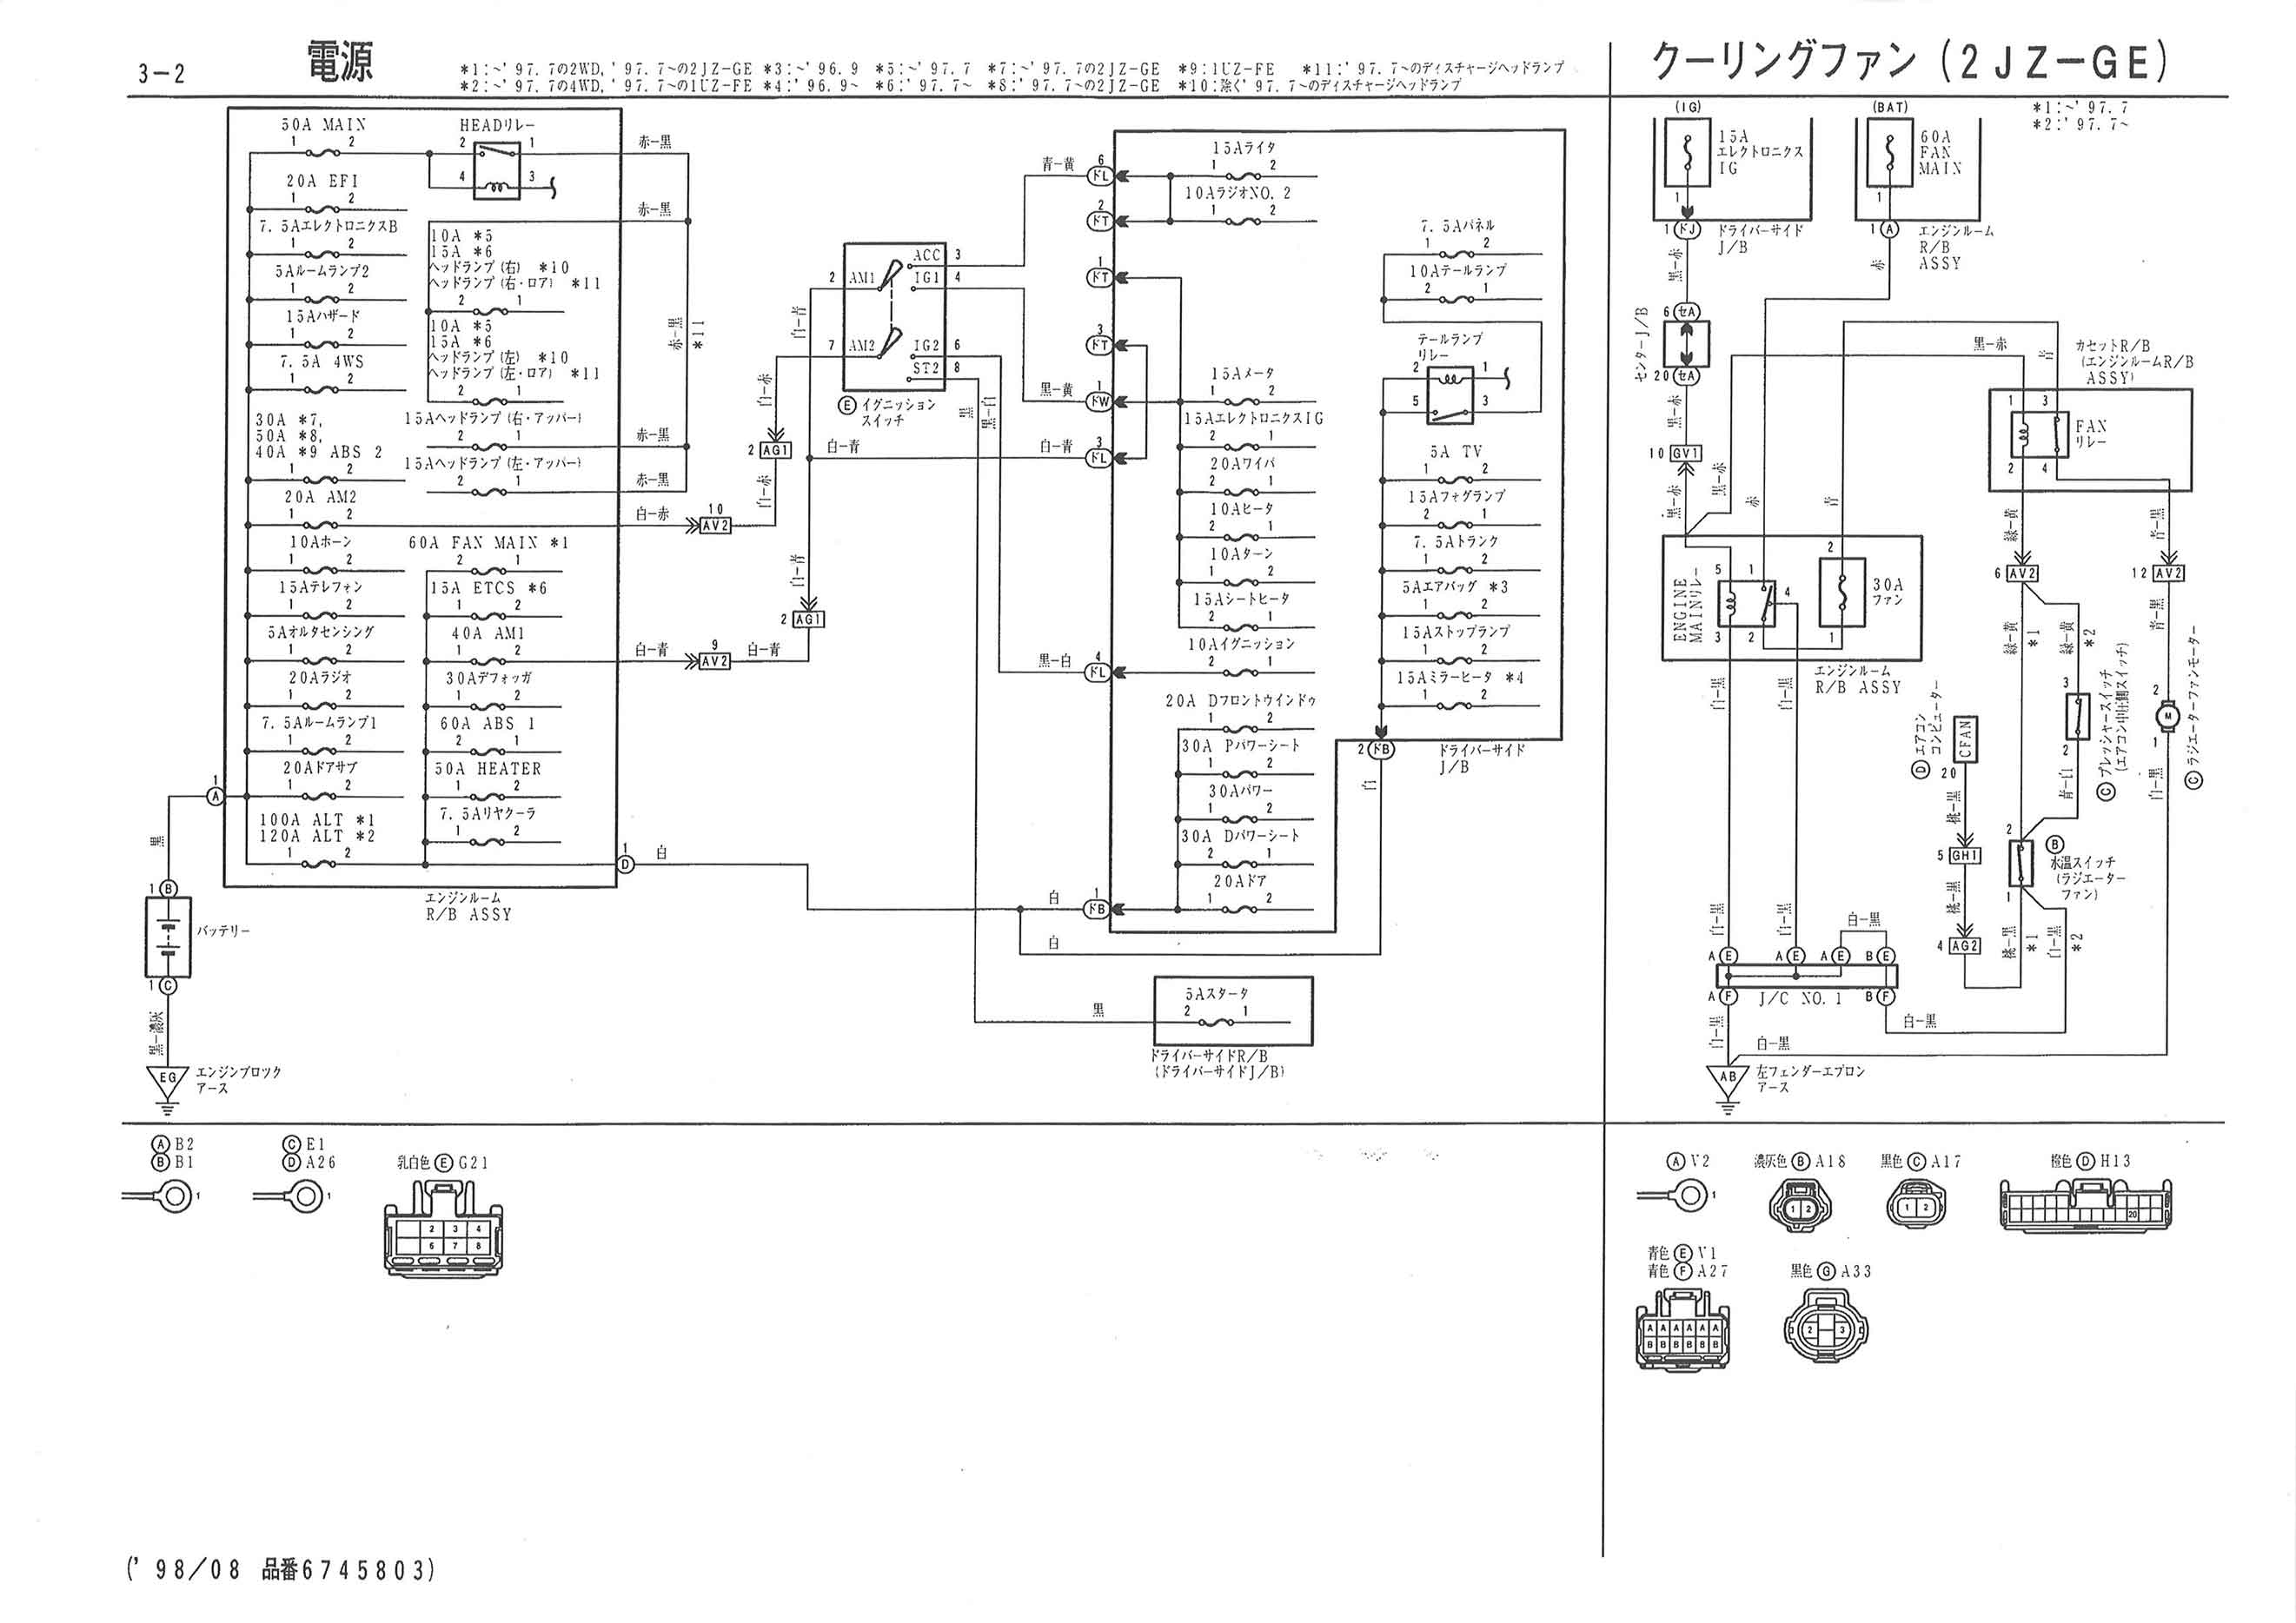 1992 lexus sc400 fuse box diagram  lexus  auto fuse box